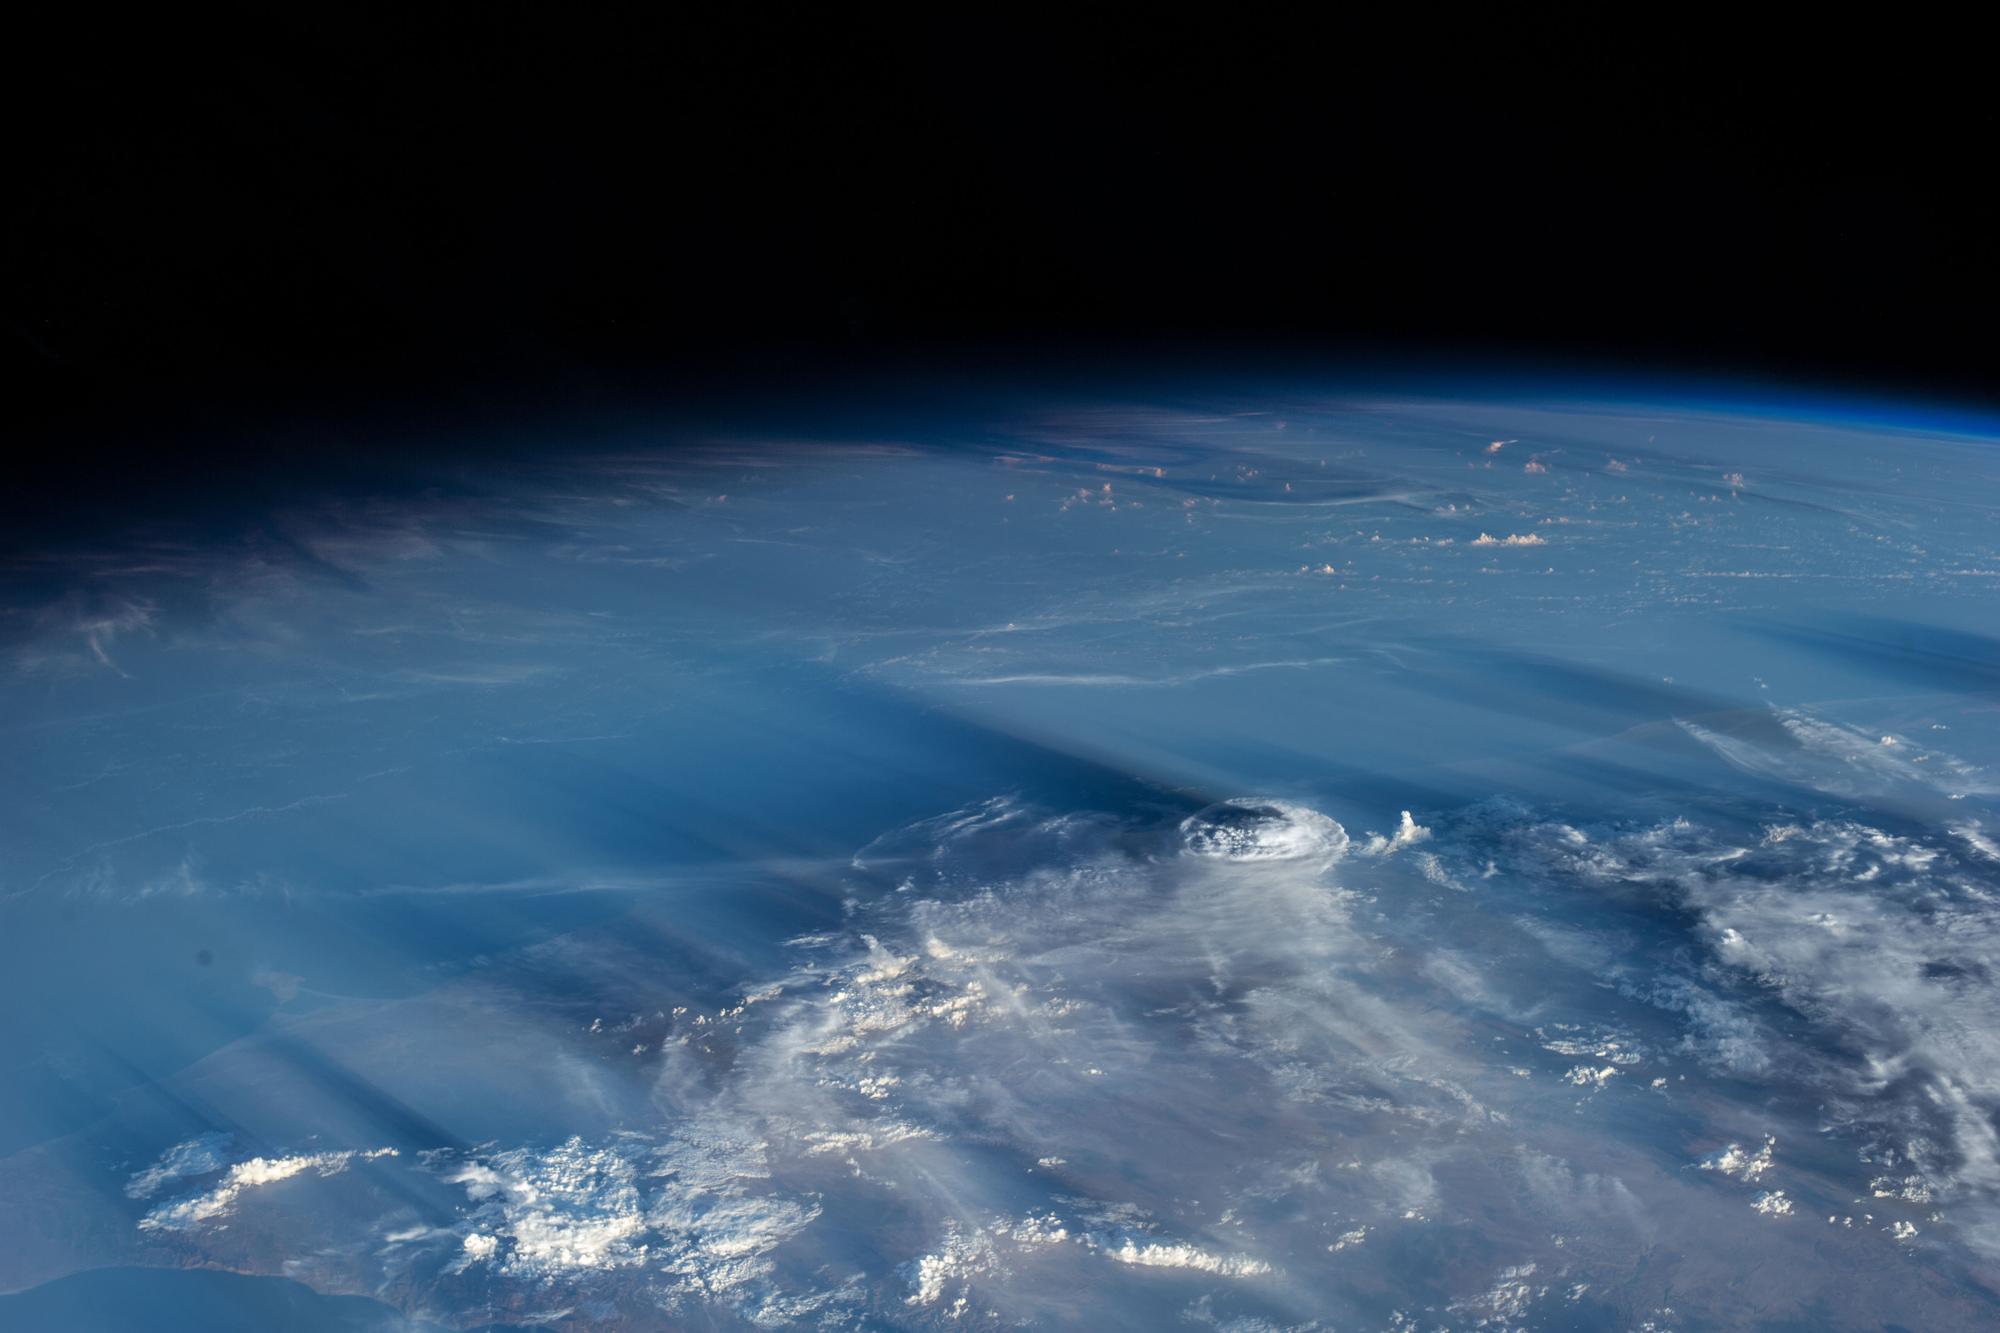 Earth from space pictures nasa Here are the best photo books for all those pictures